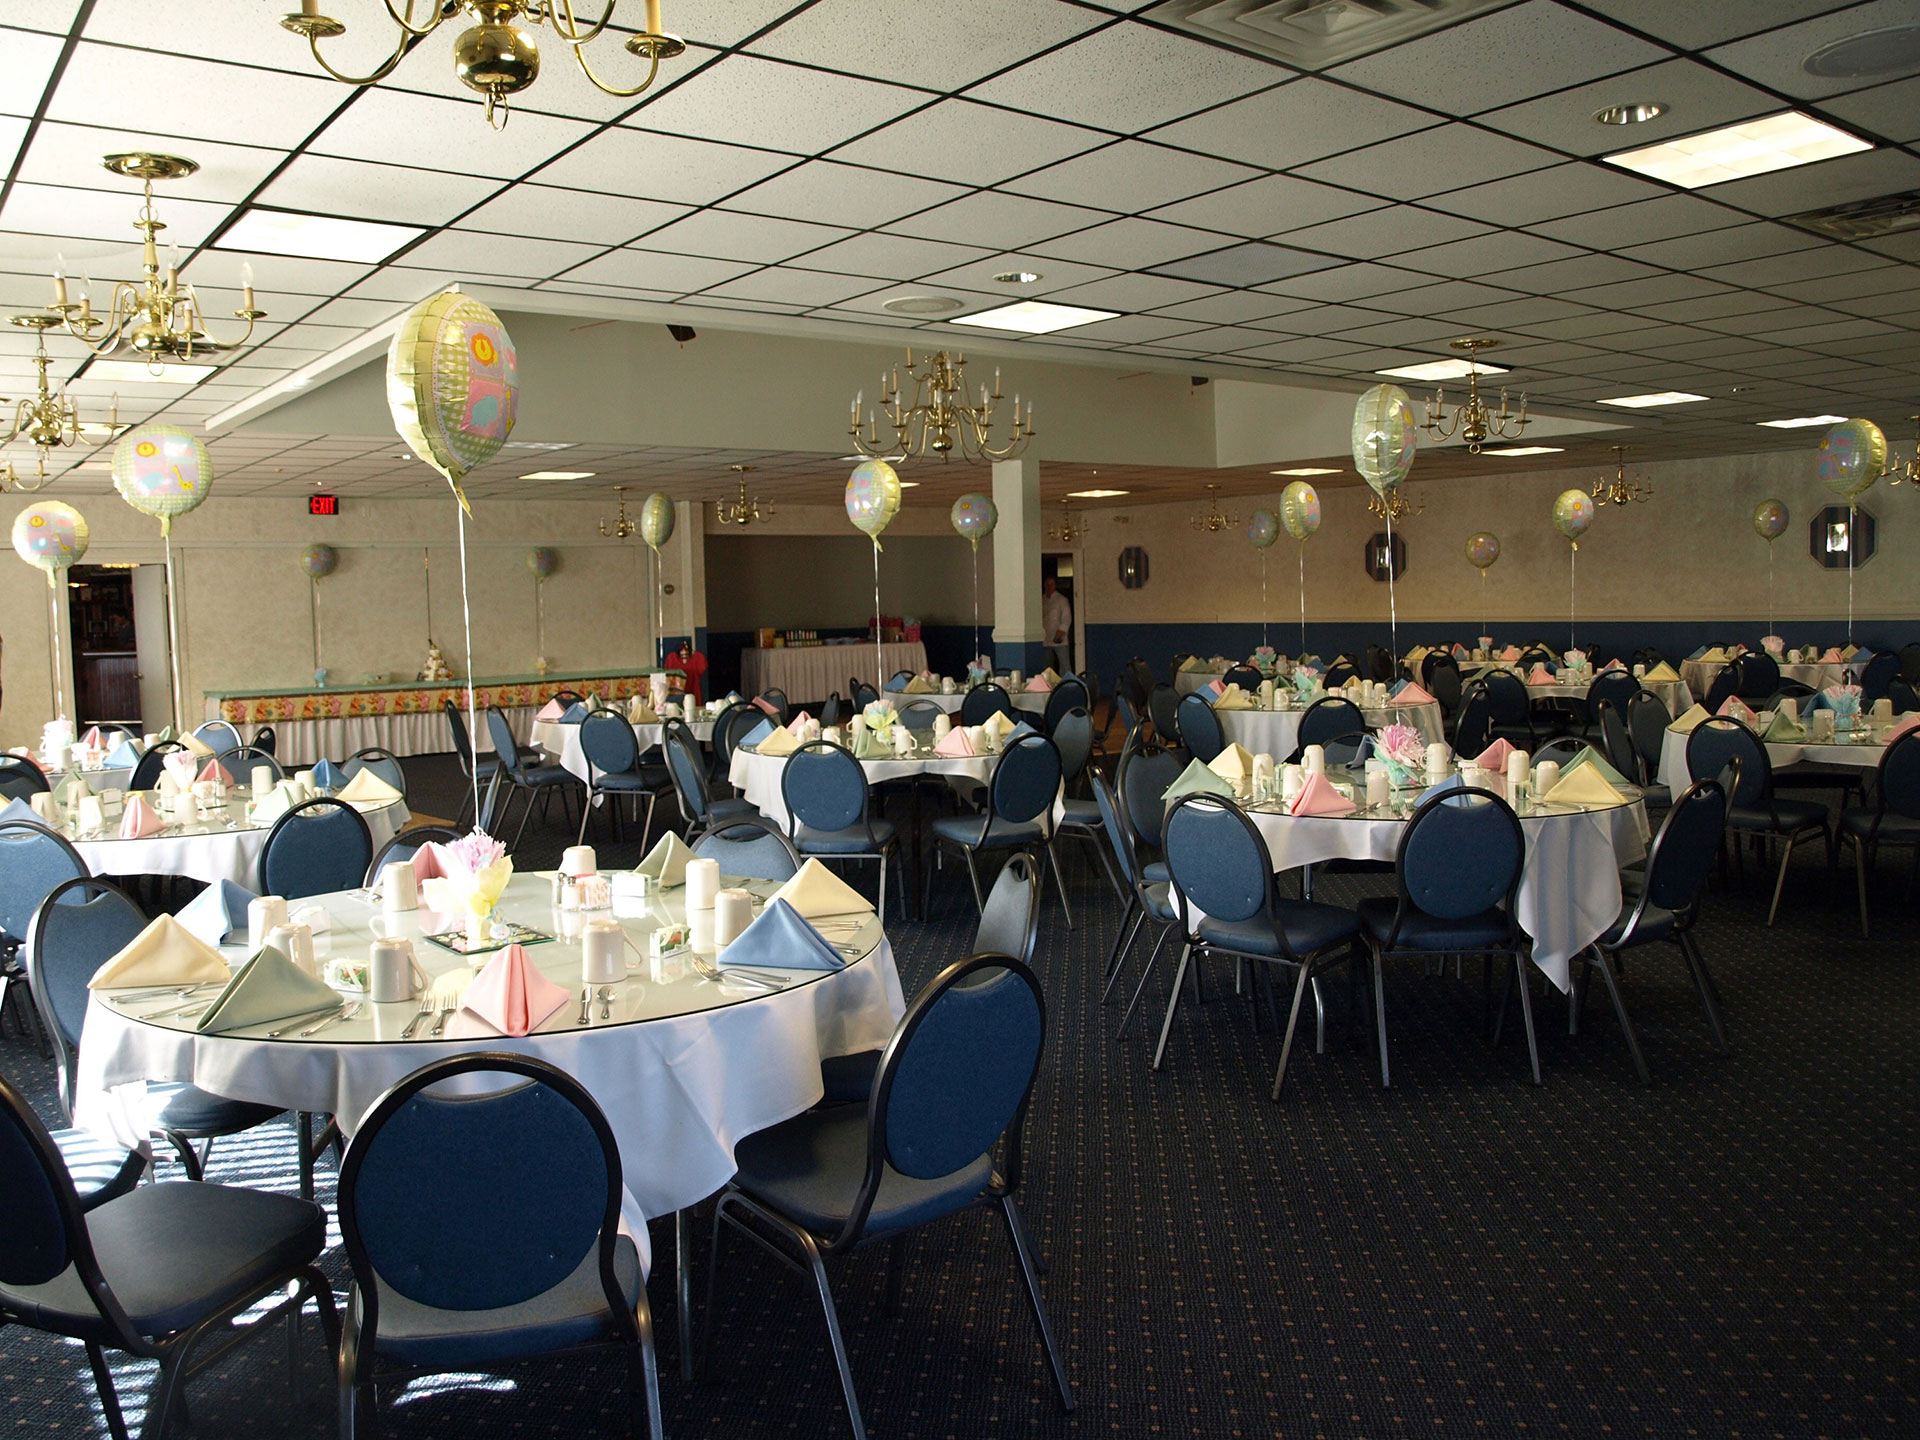 Roselawn Banquet Facility New York Mills Ny 13417